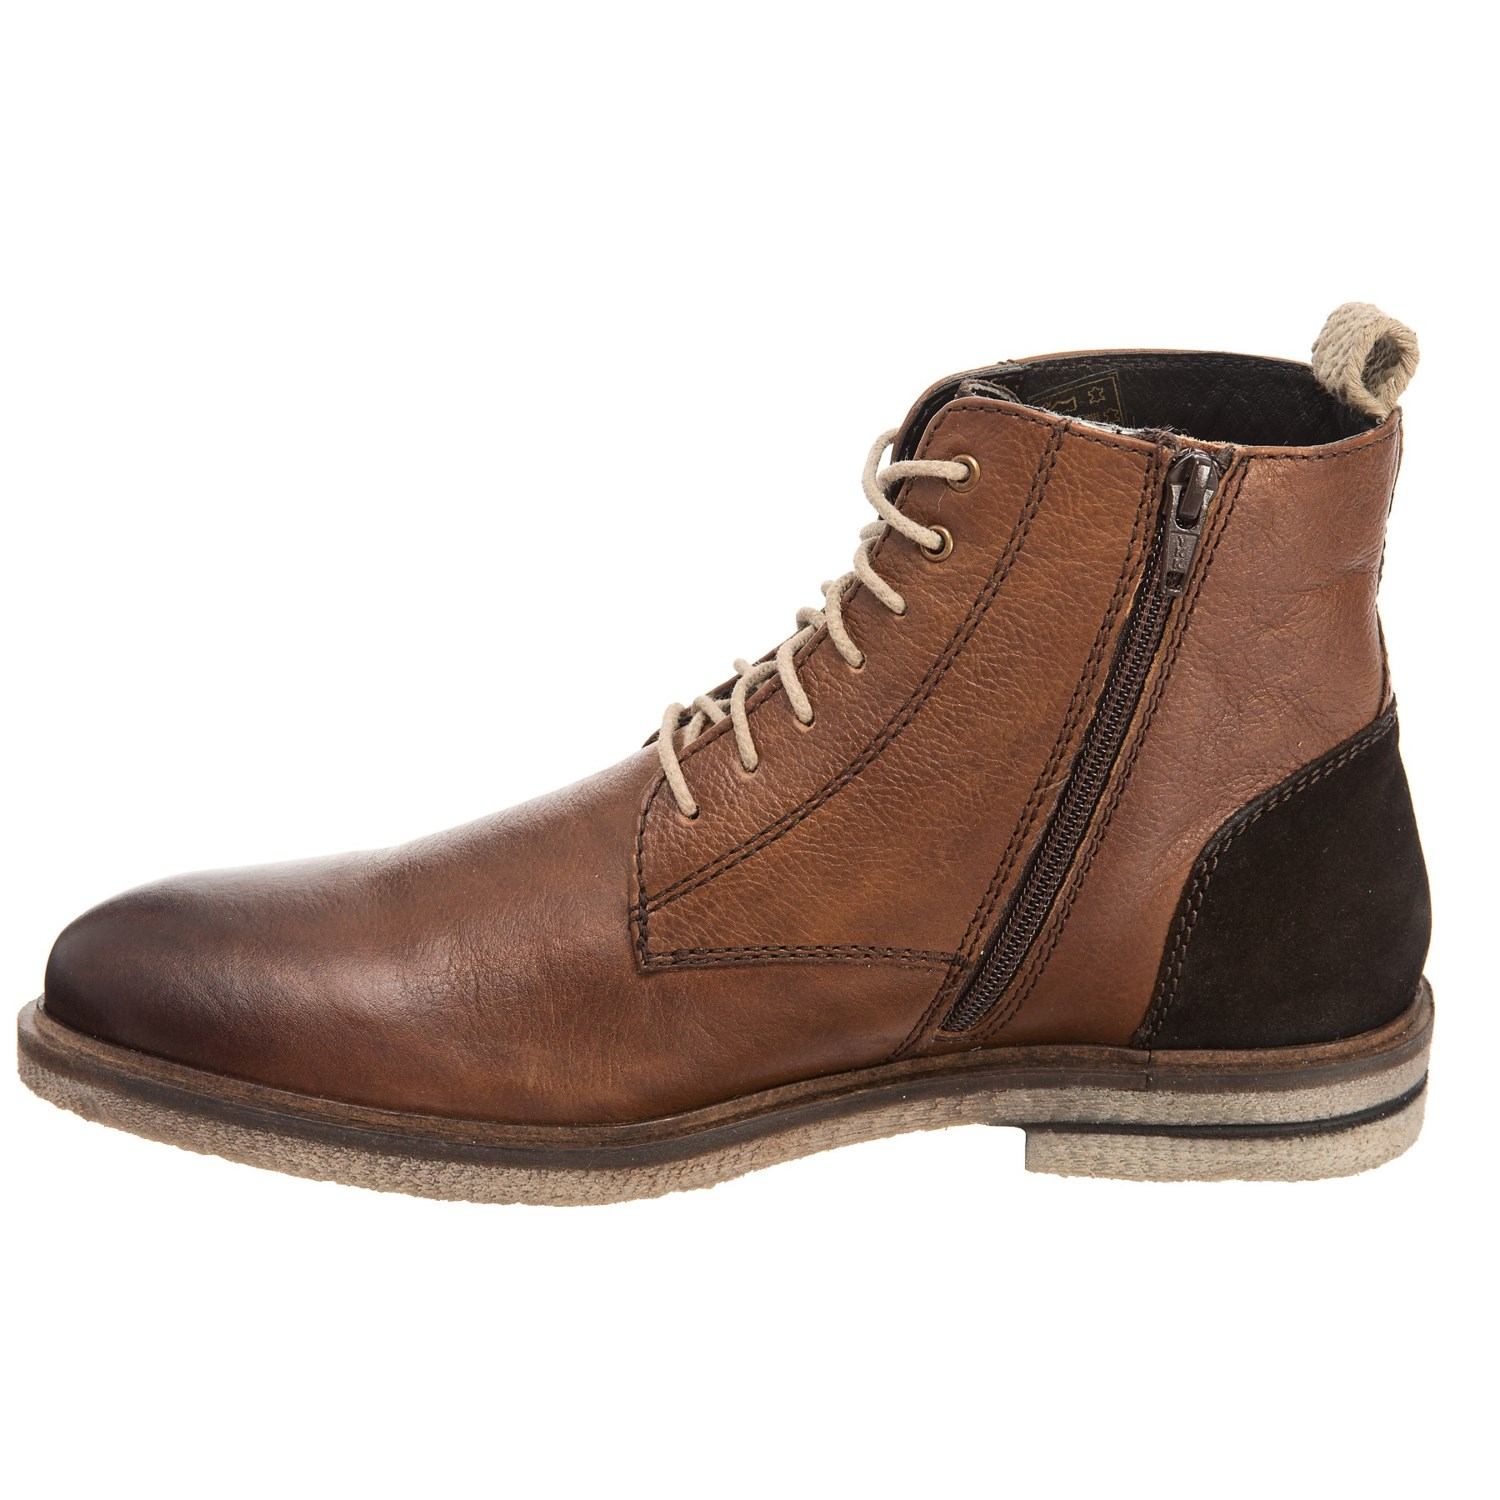 7bc4be480bf Josef Seibel Stanley 01 Boots (For Men) - Save 48%